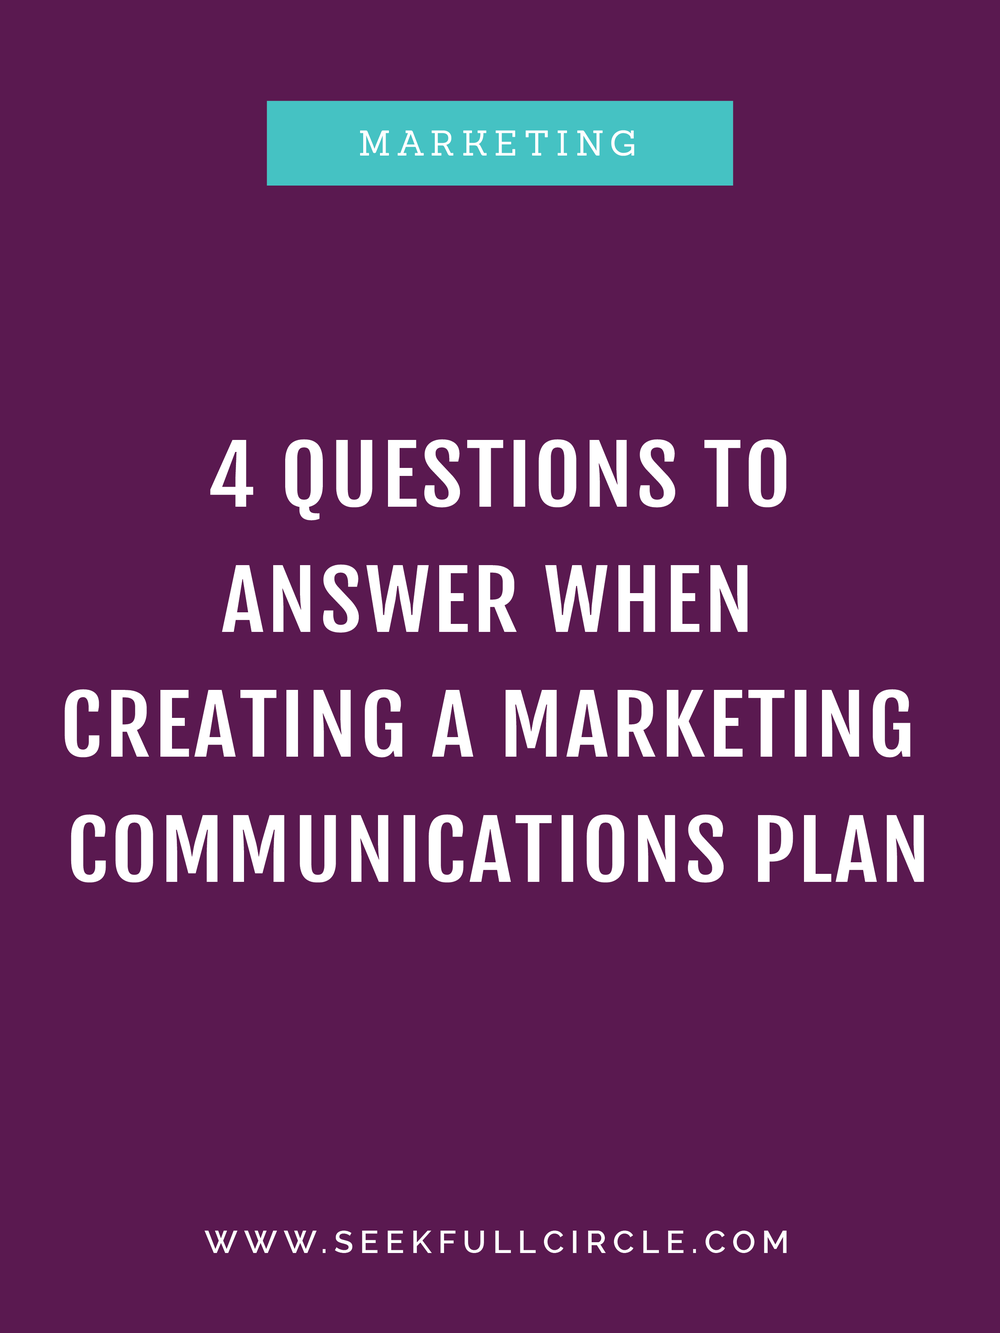 kim waltman fullcircle creative + coaching creating a marketing communications plan blog post